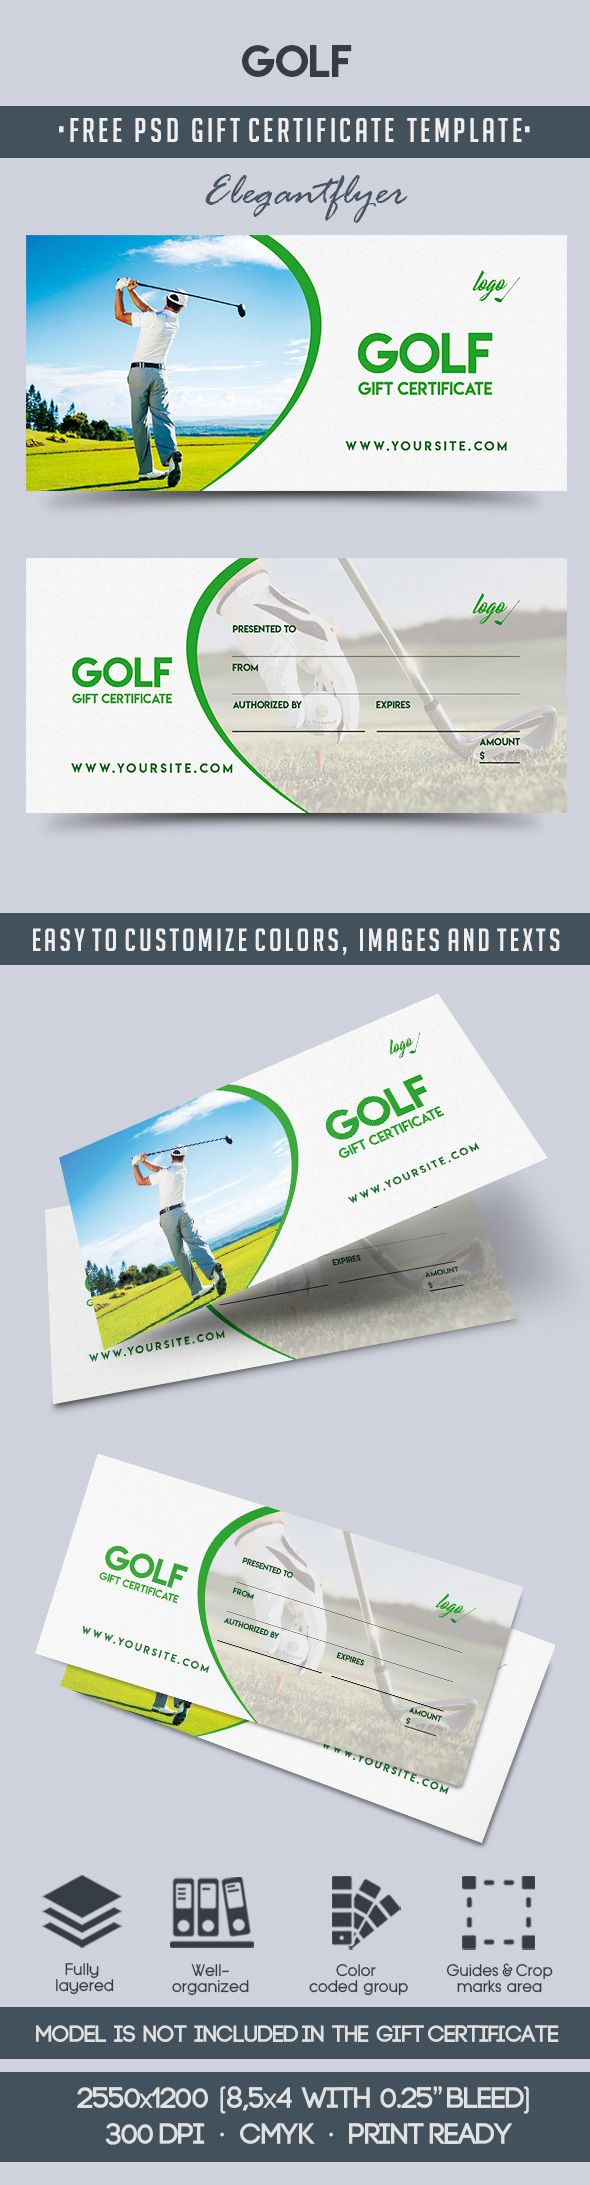 Golf Club Gift Vouchers